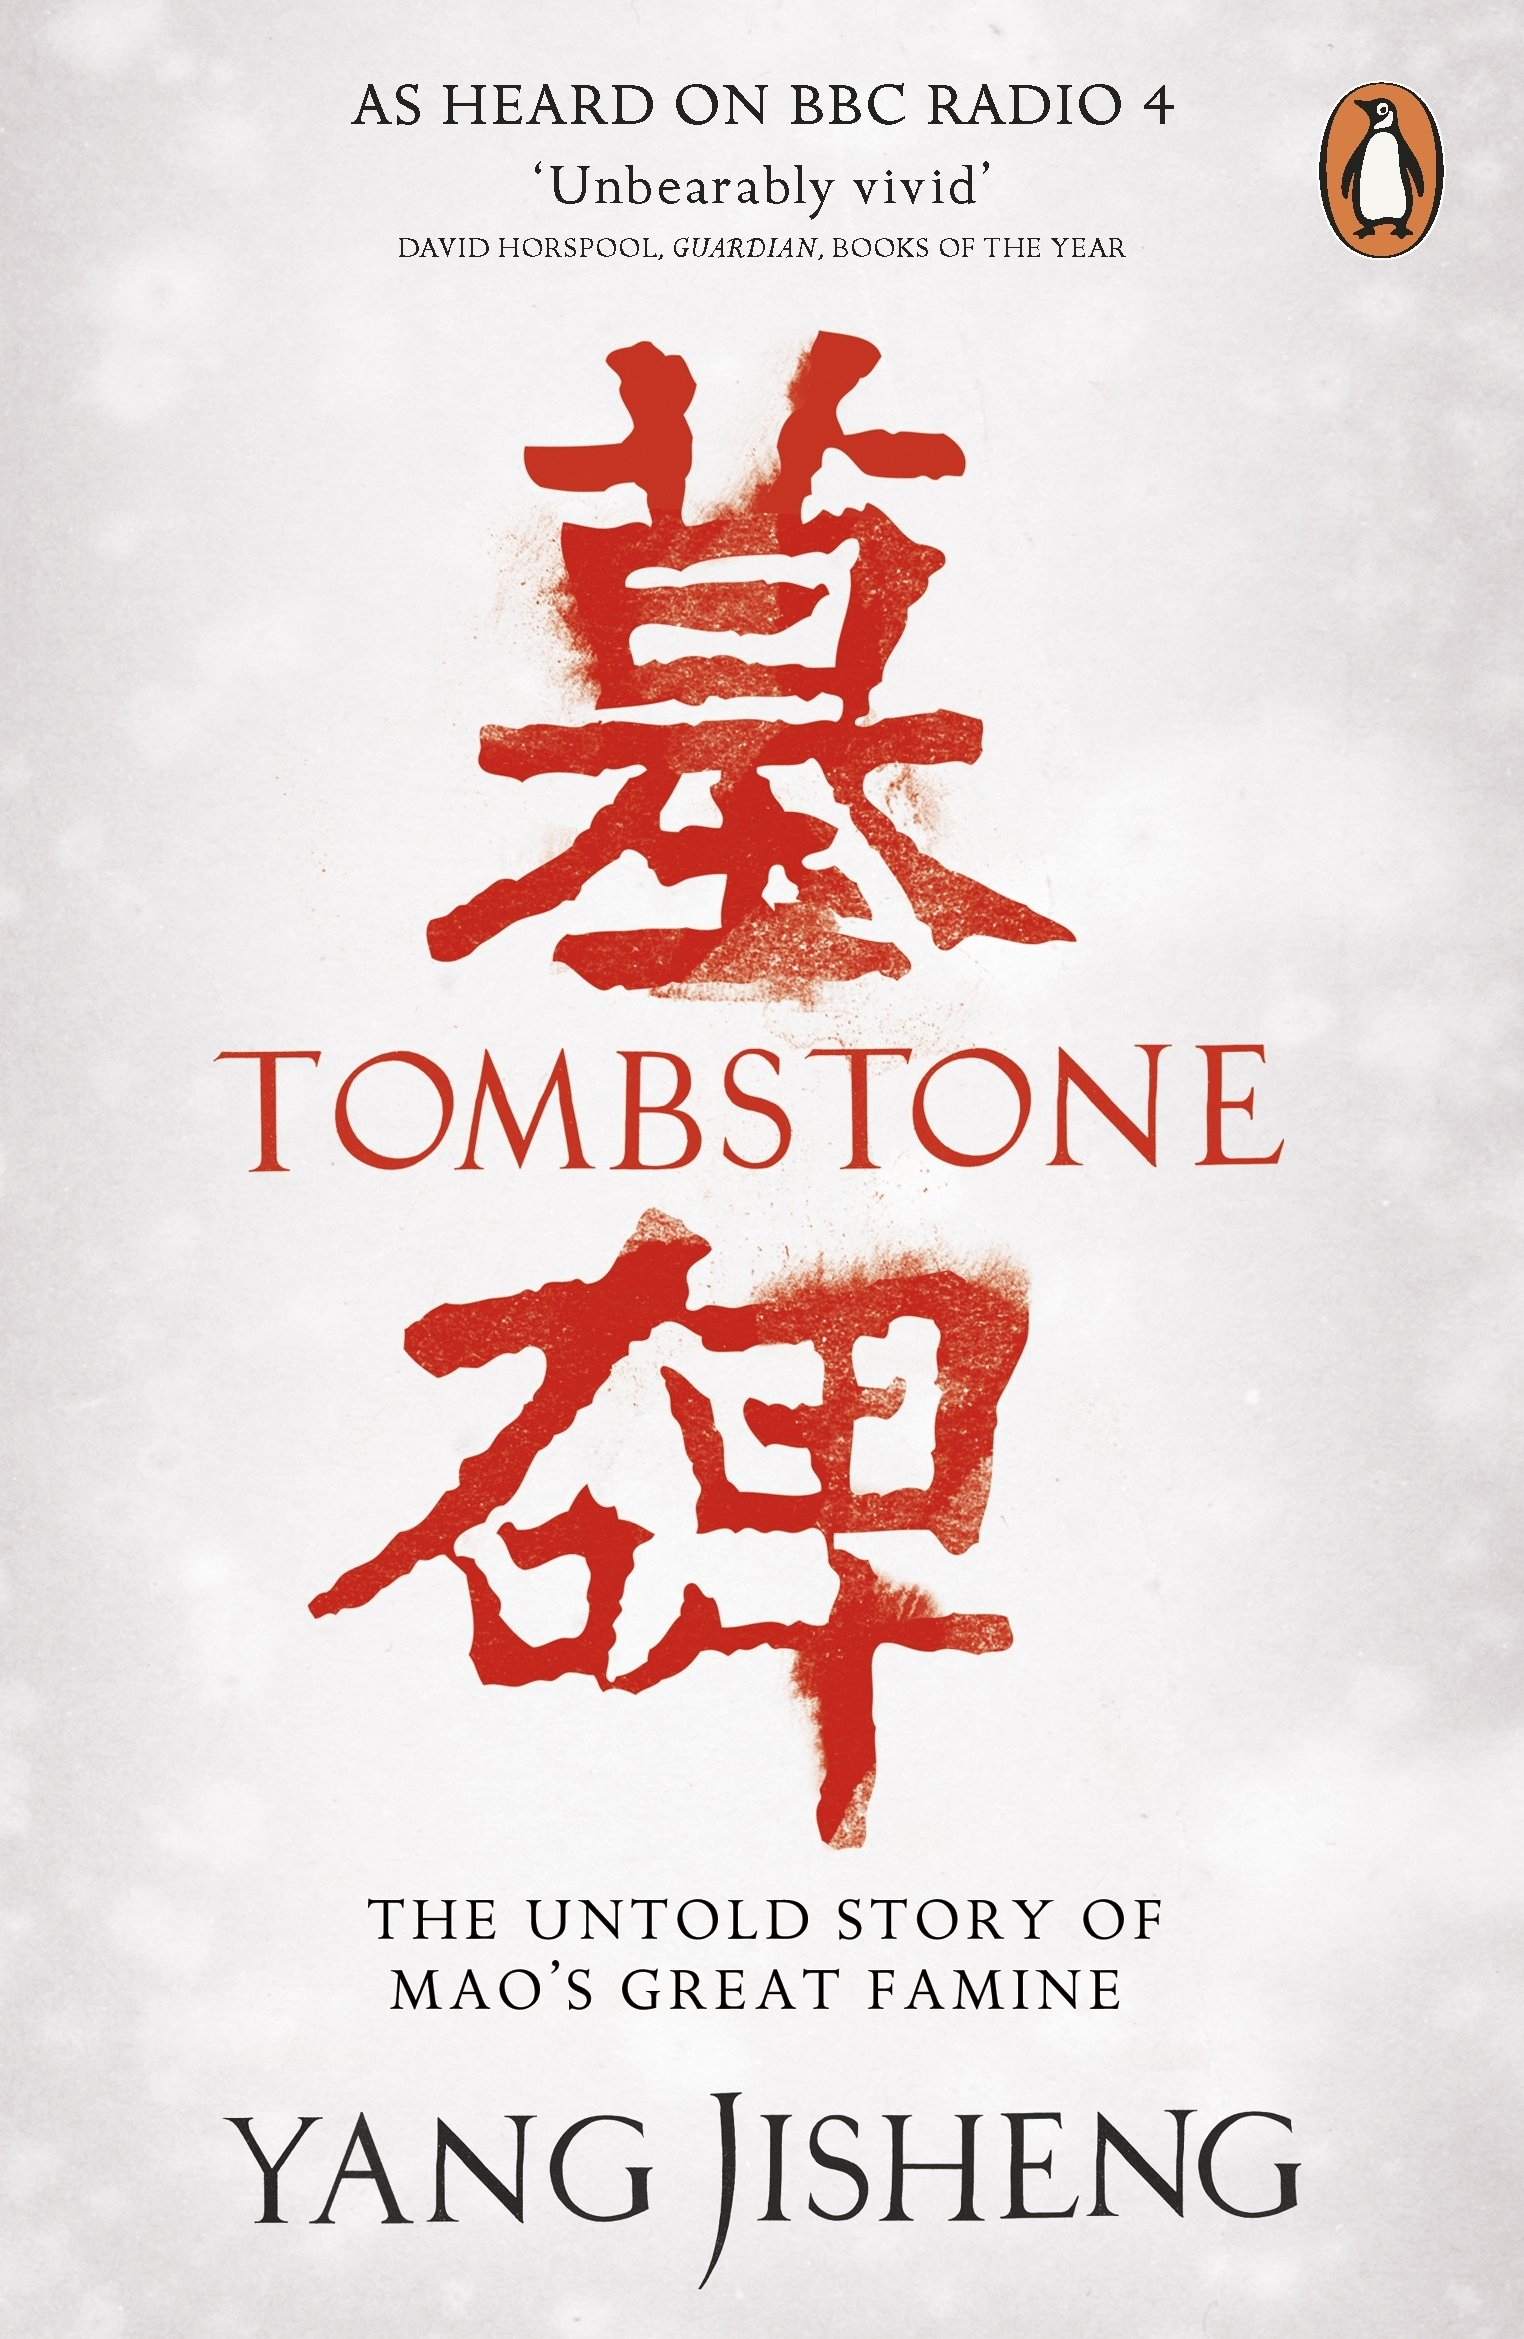 Tombstone The Untold Story Of Maos Great Famine Mao Baby Music Cellular Phone Yang Jisheng Edward Friedman Guo Jian Stacy Mosher 9780241956984 Books